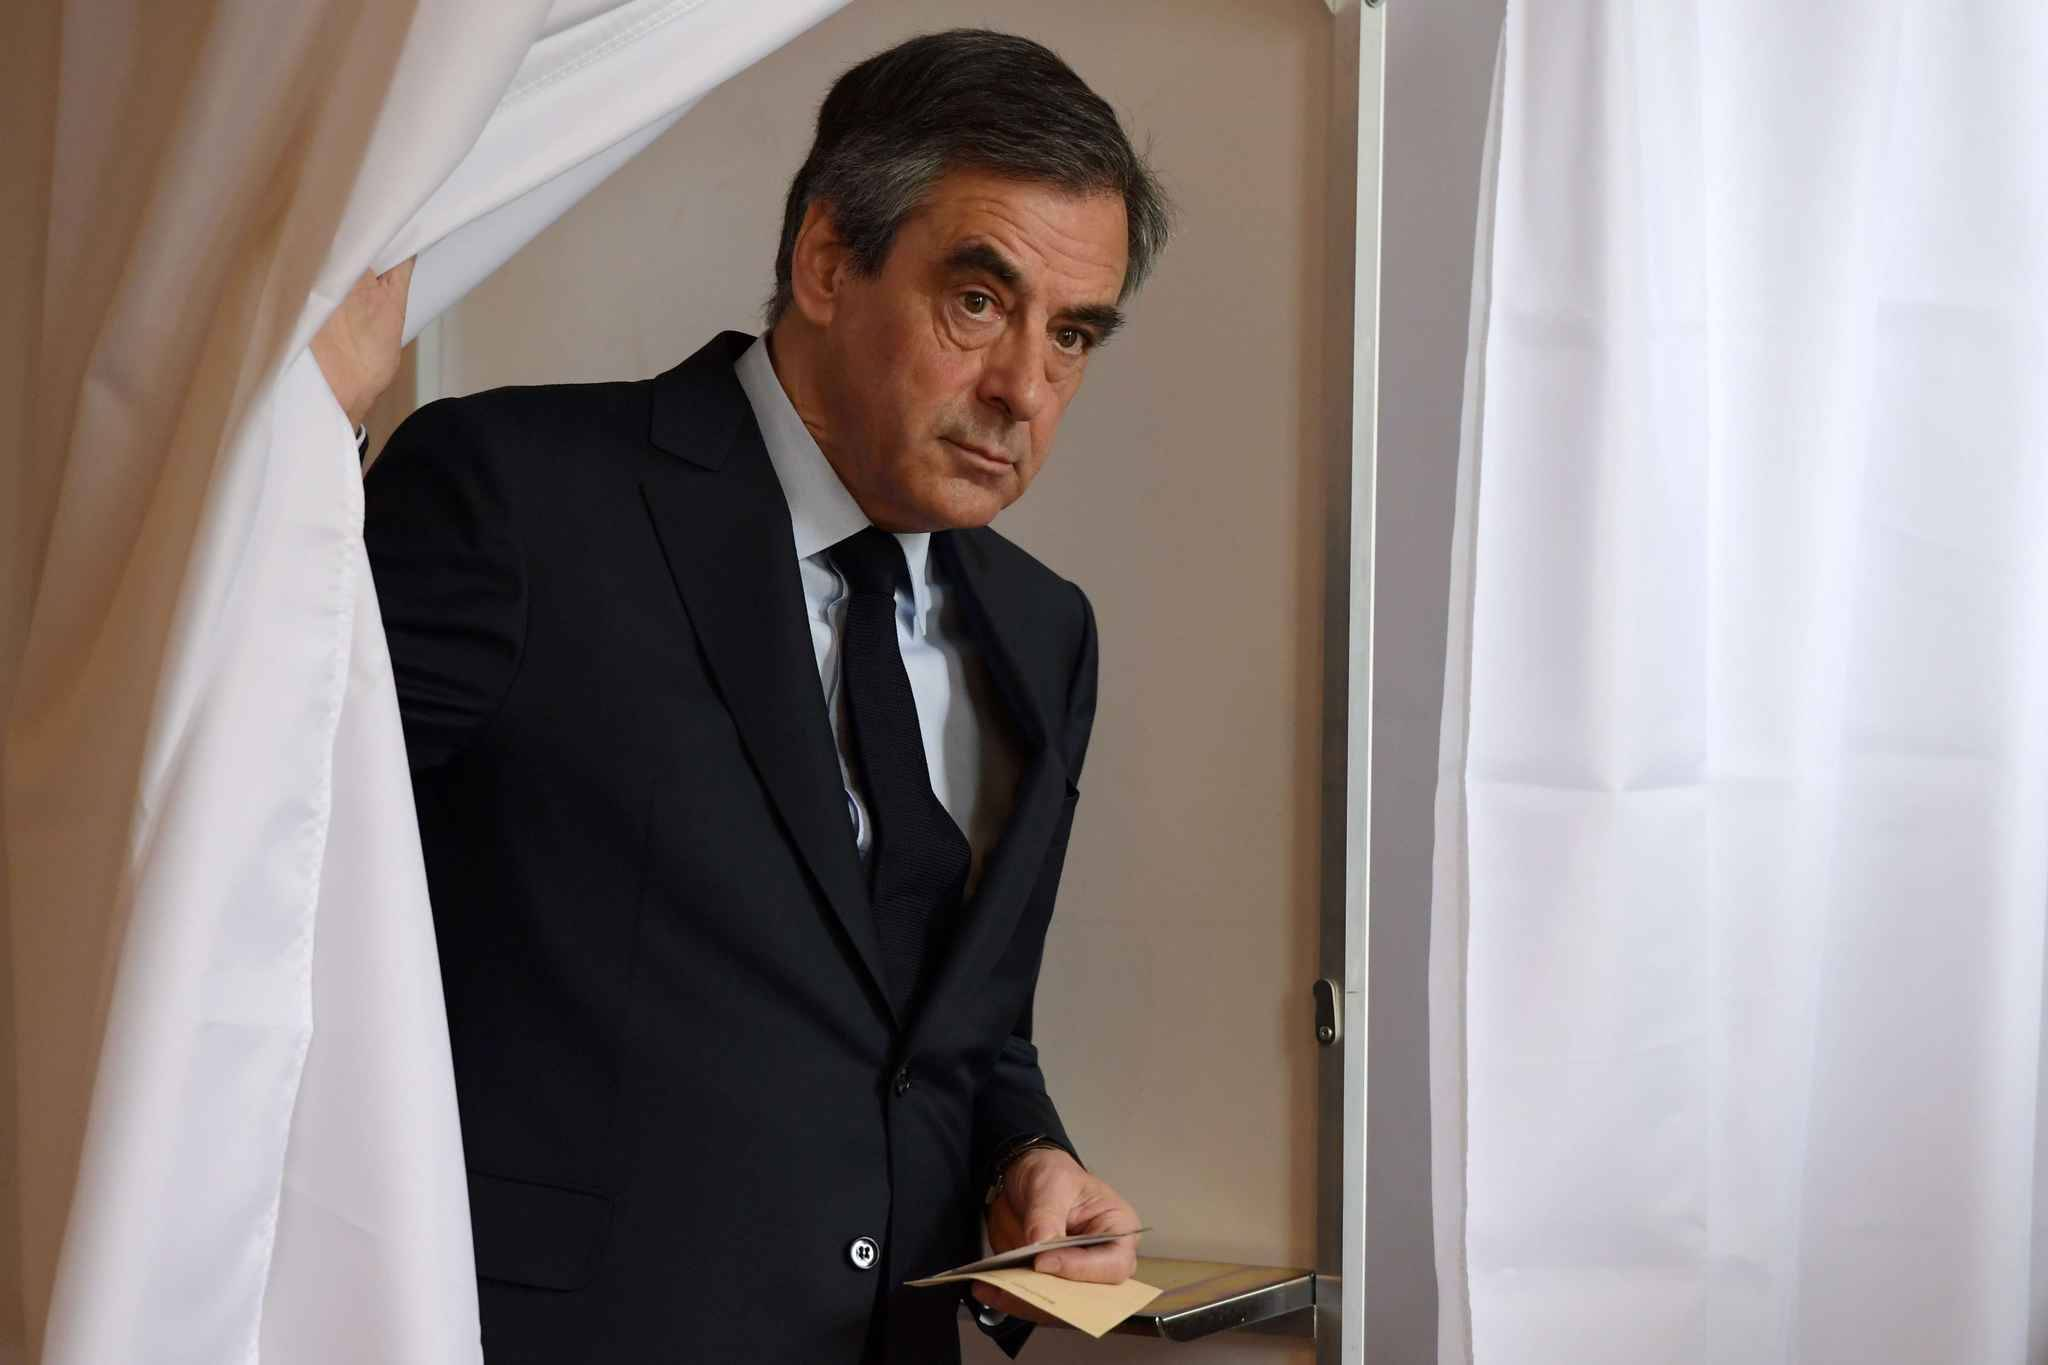 soup ons d 39 emplois fictifs fran ois fillon de retour. Black Bedroom Furniture Sets. Home Design Ideas